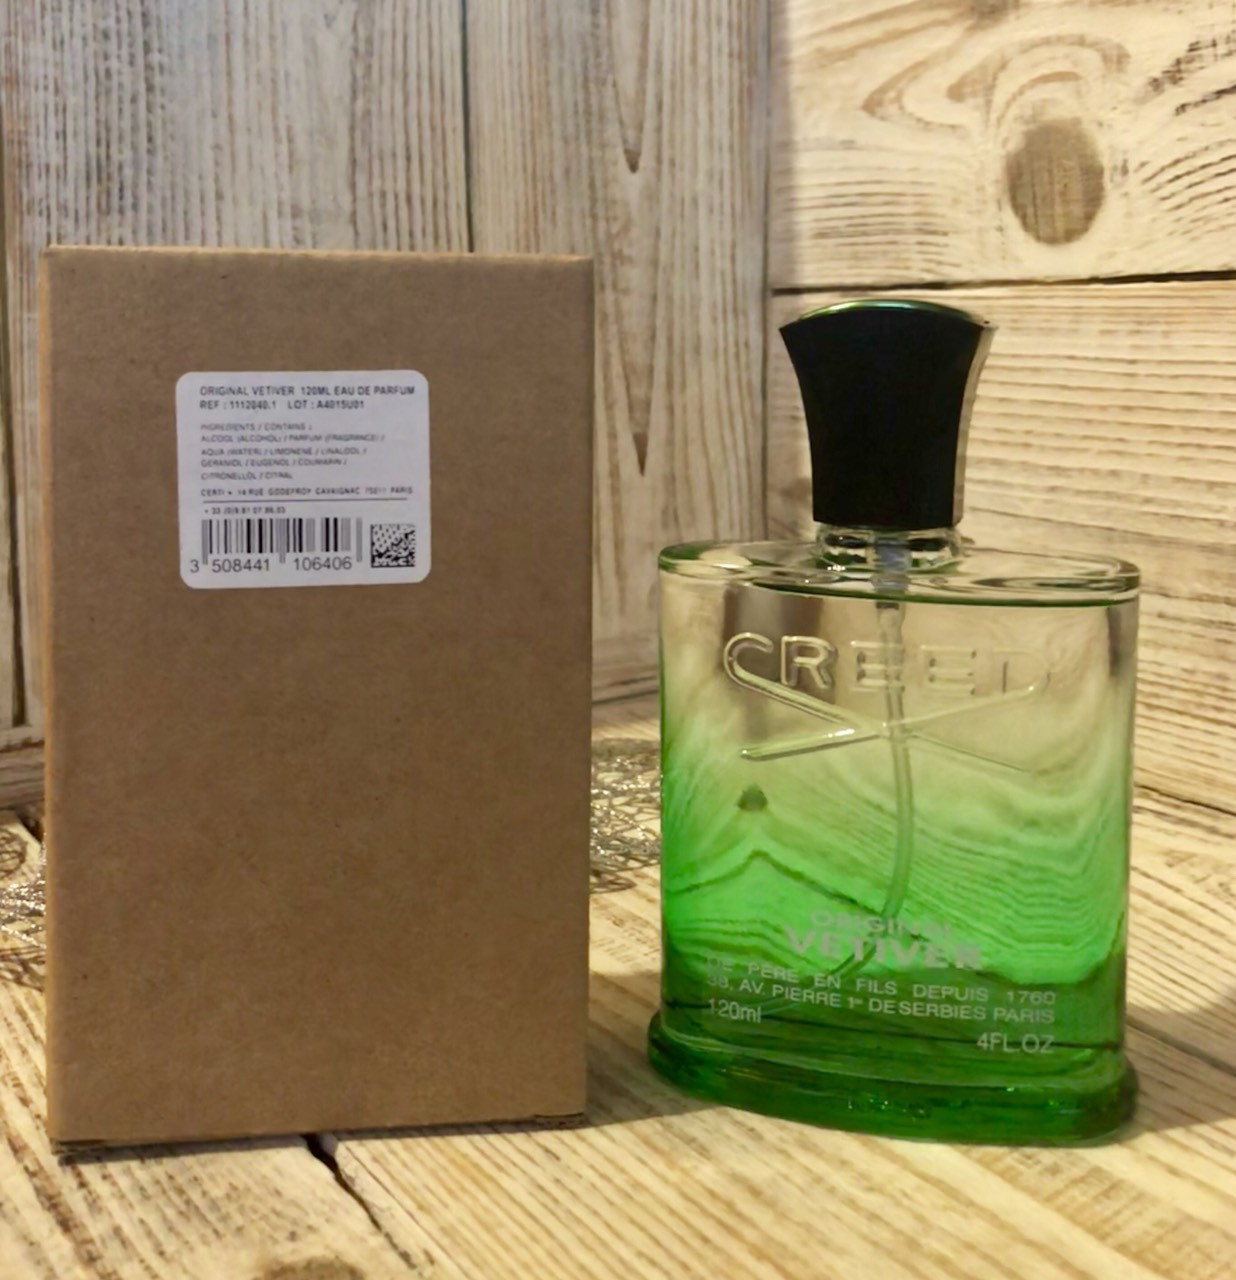 духи тестер Creed Original Vetiver Eau De Parfum 120ml от интернет